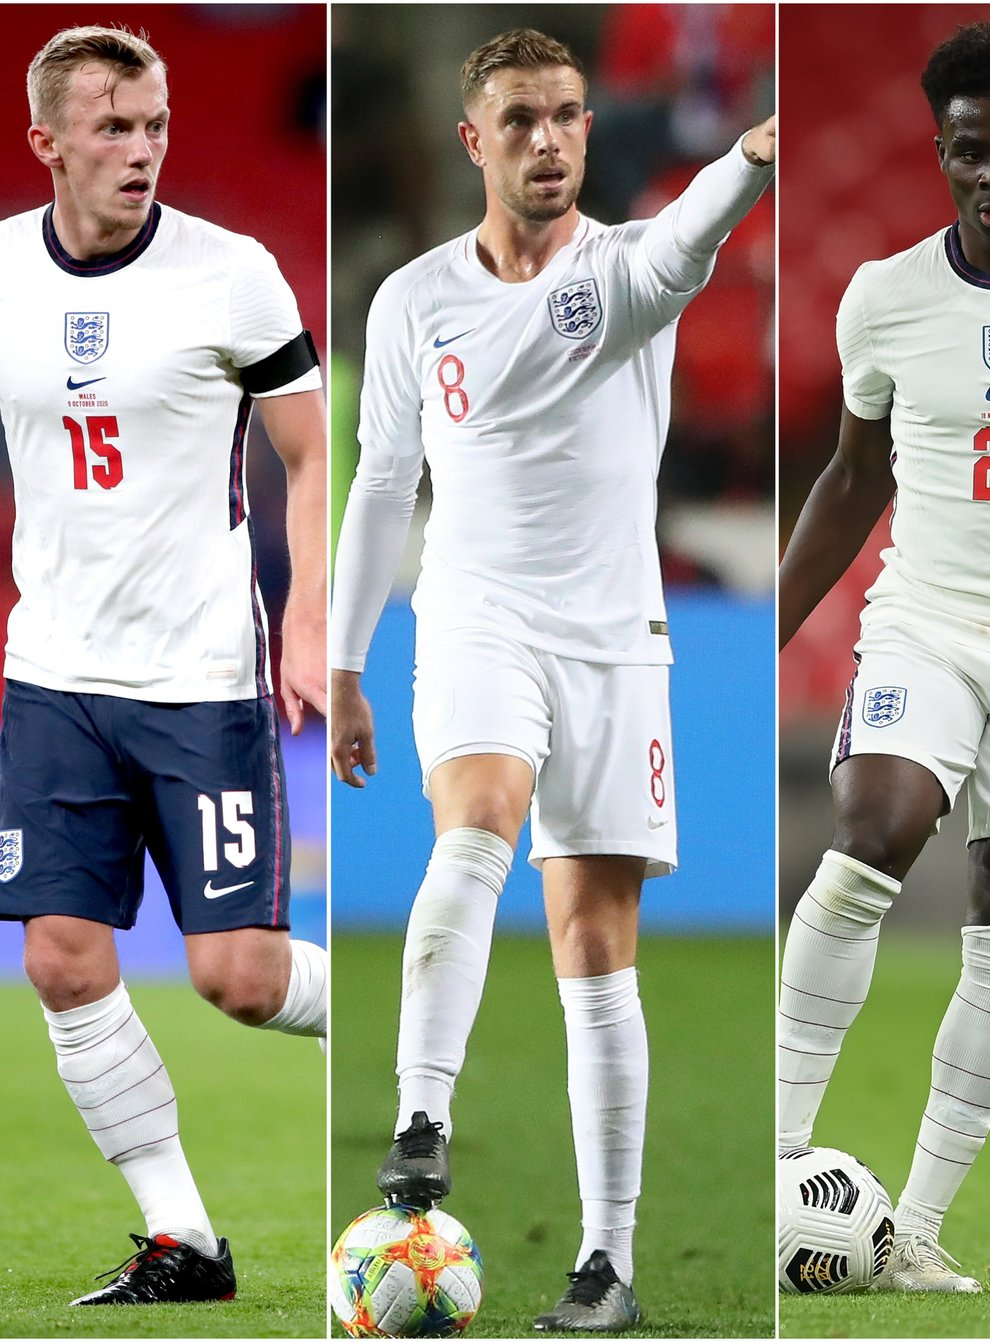 James Ward-Prowse, Jordan Henderson and Bukayo Saka will be hopin to play some part of England's friendly against Romania.